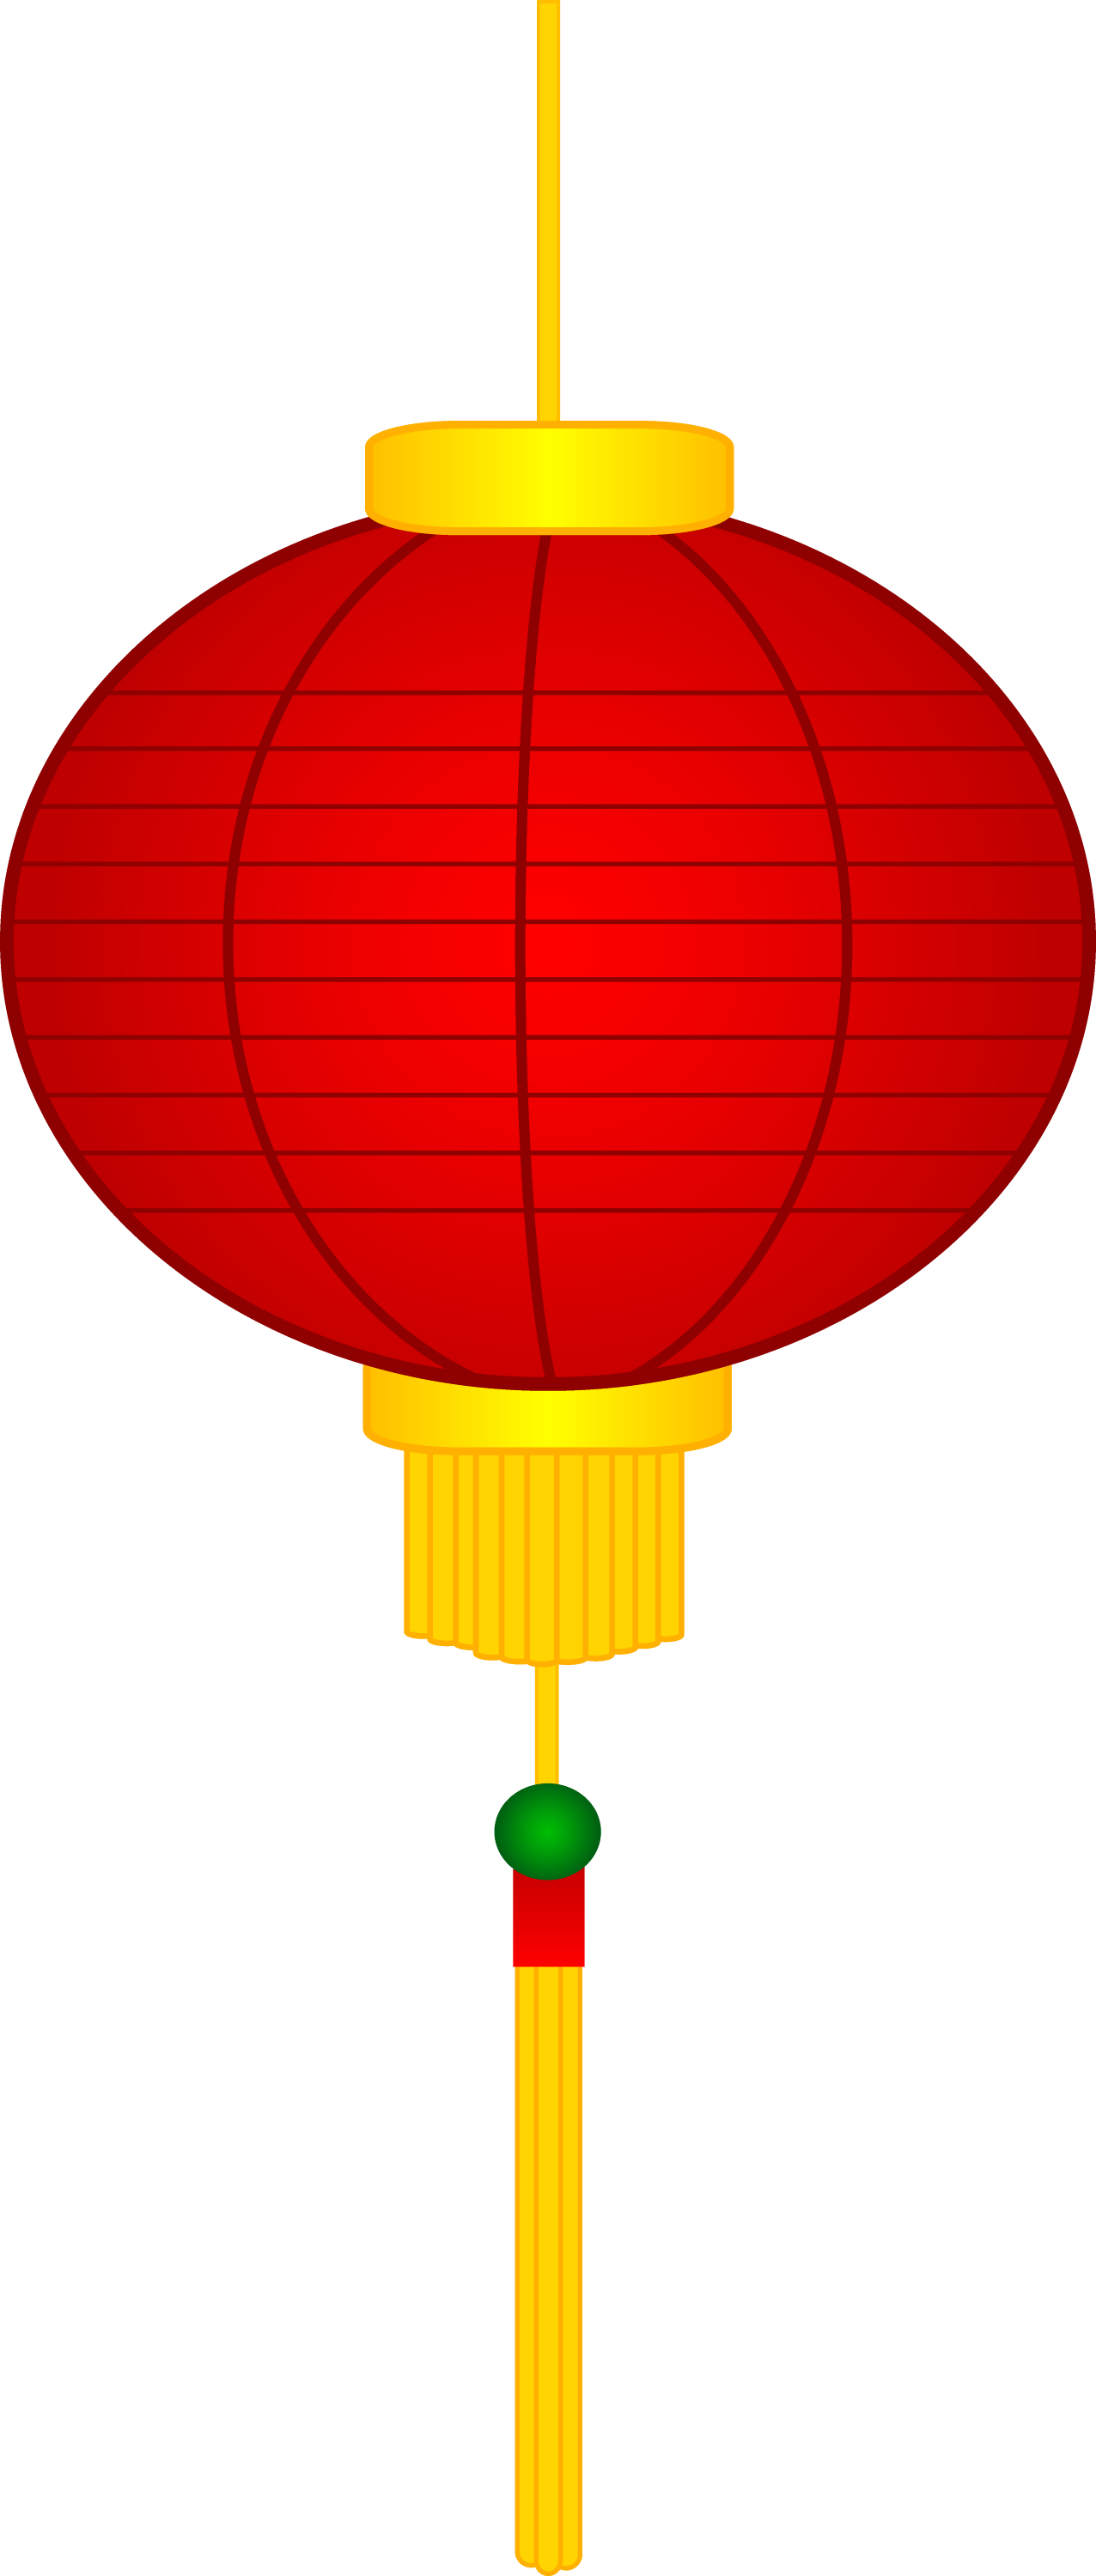 red chinese paper lantern - Chinese New Year Lanterns